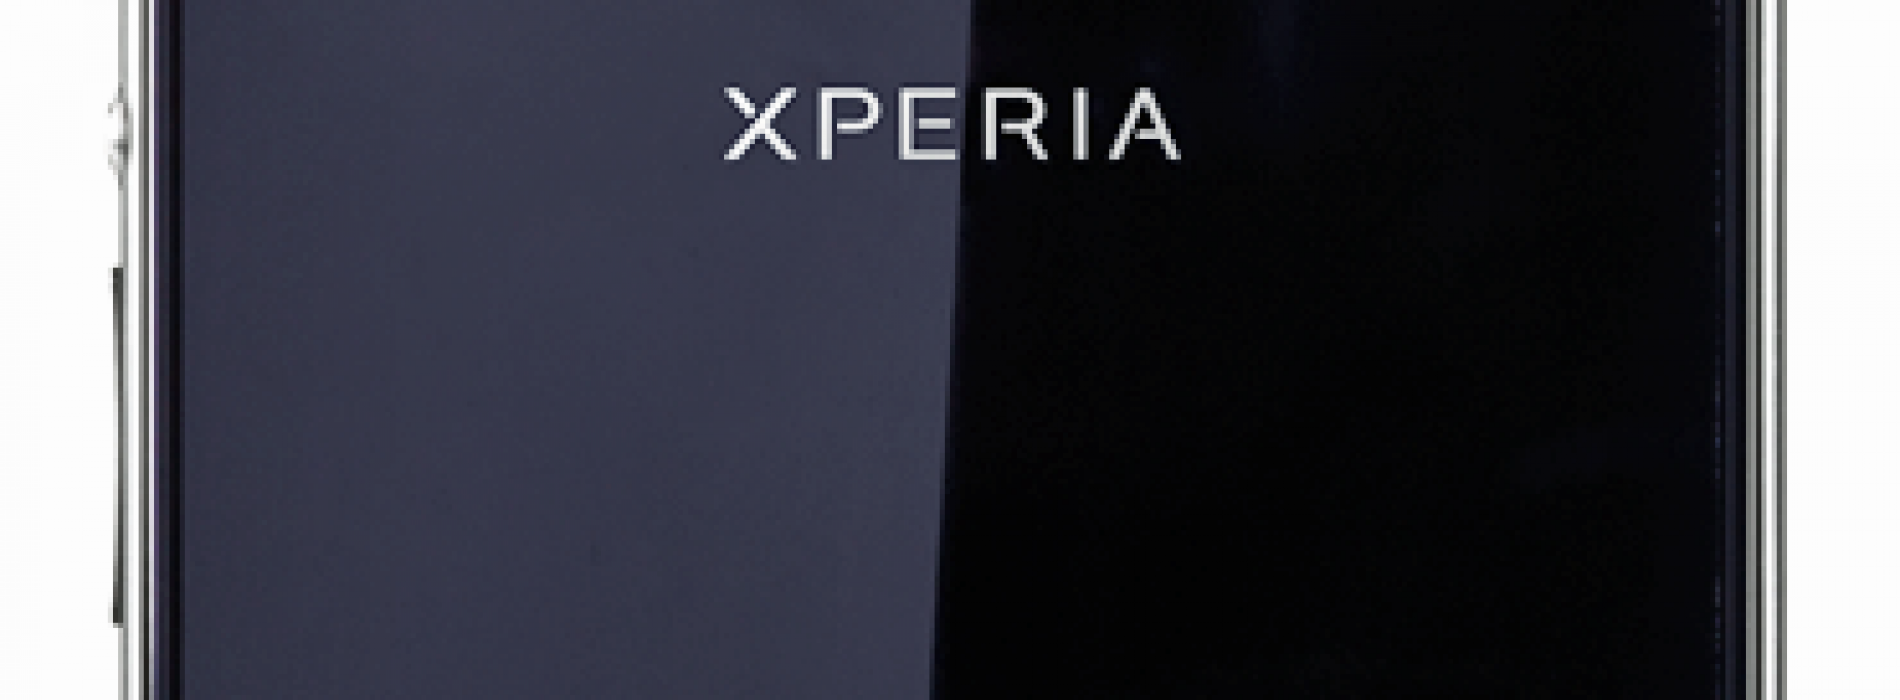 T-Mobile tipped to offer Sony Xperia Z1